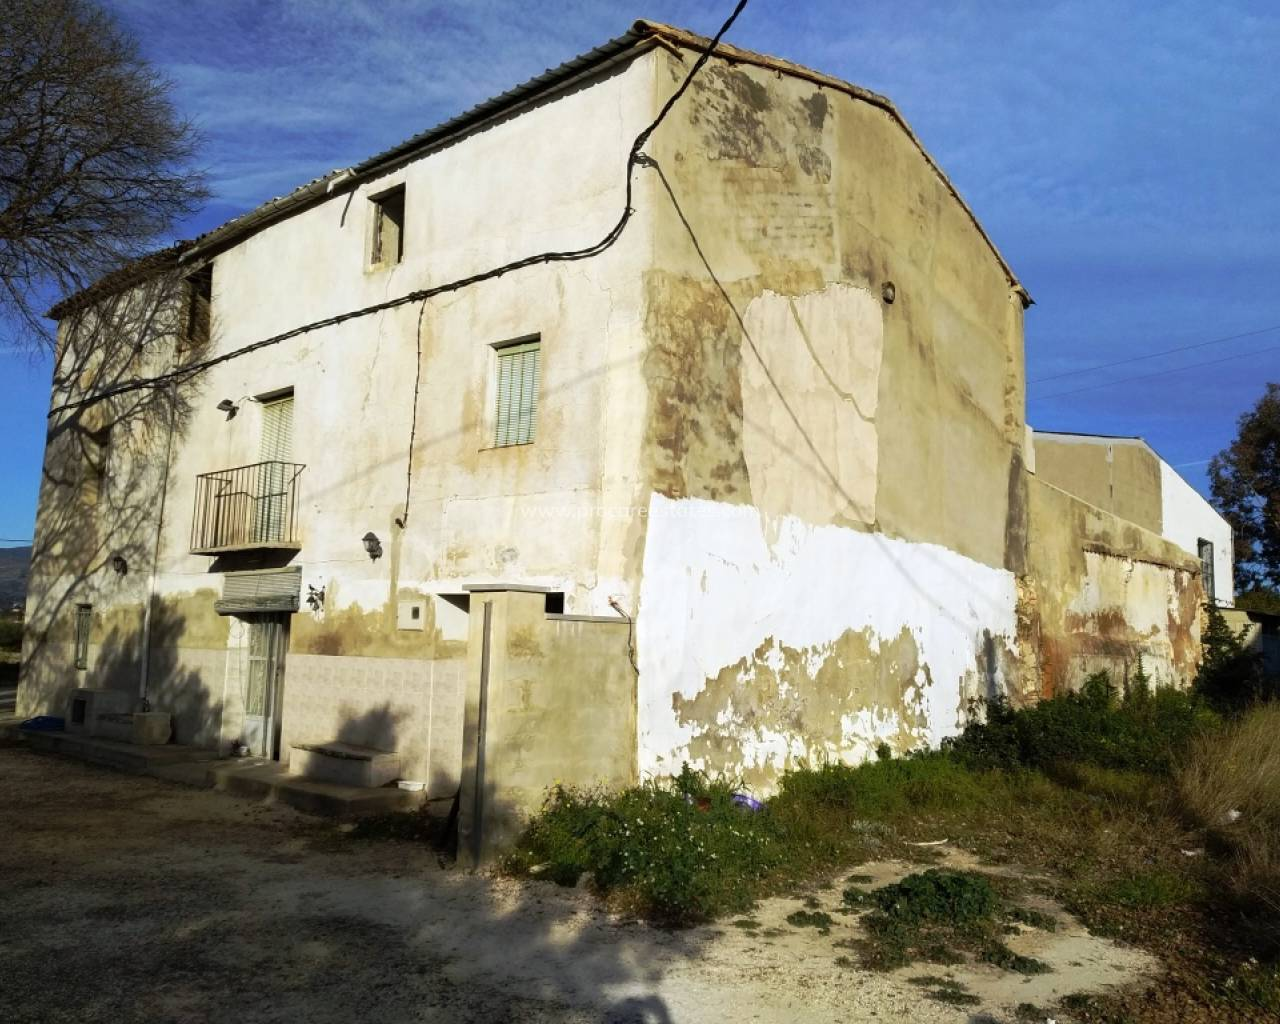 Verkoop - Country Property - Ontinyent